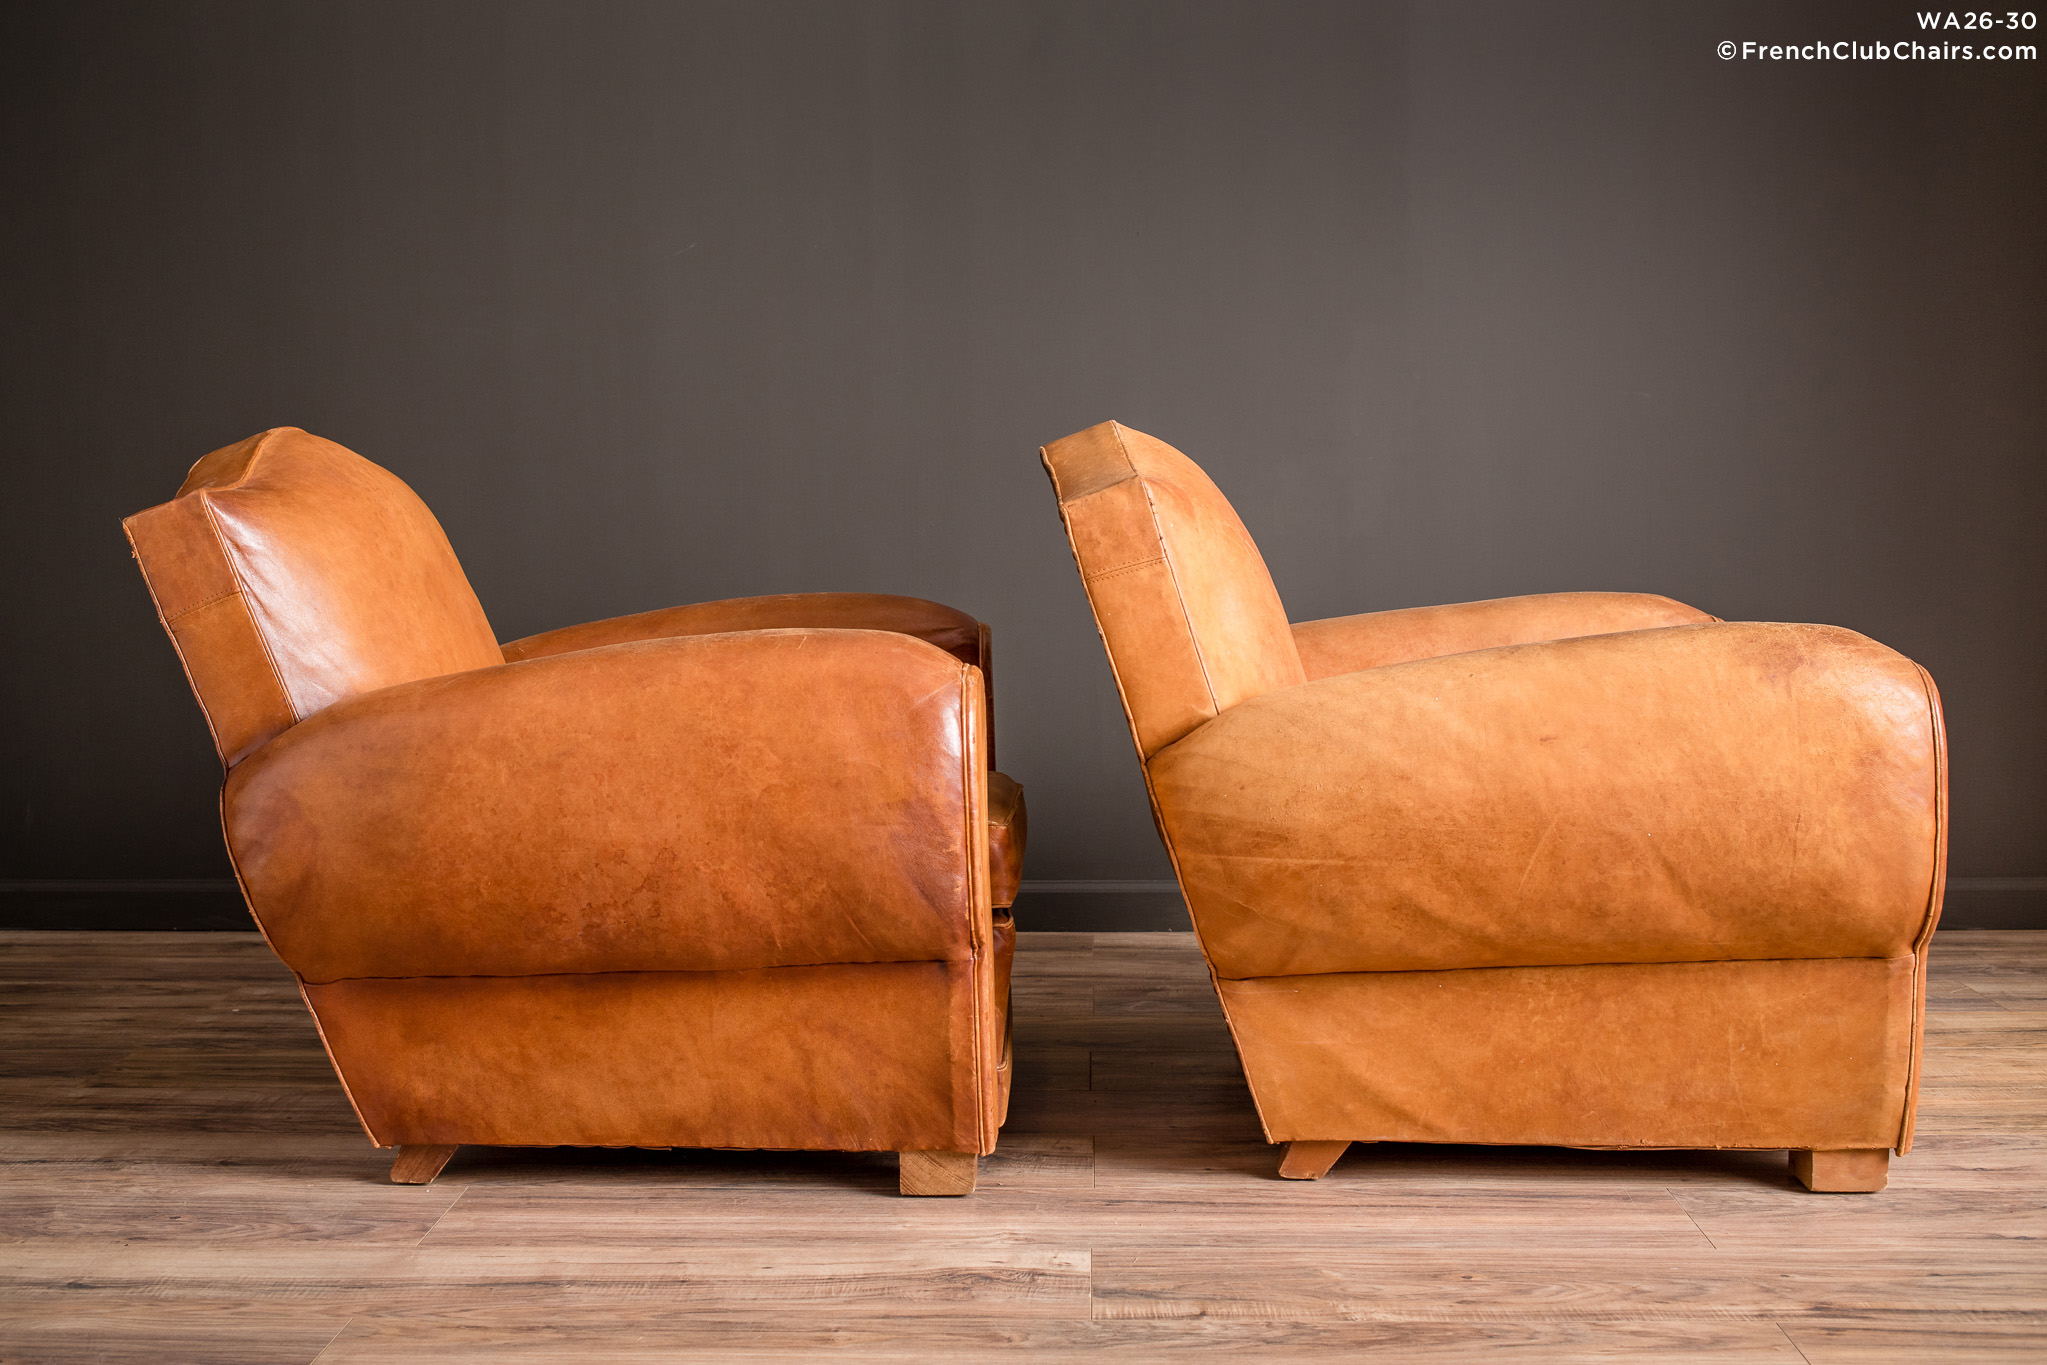 WA_26-30_Giverny_Gendarme_Light_Caramel_Pair_R_3RT-v01-williams-antiks-leather-french-club-chair-wa_fcccom